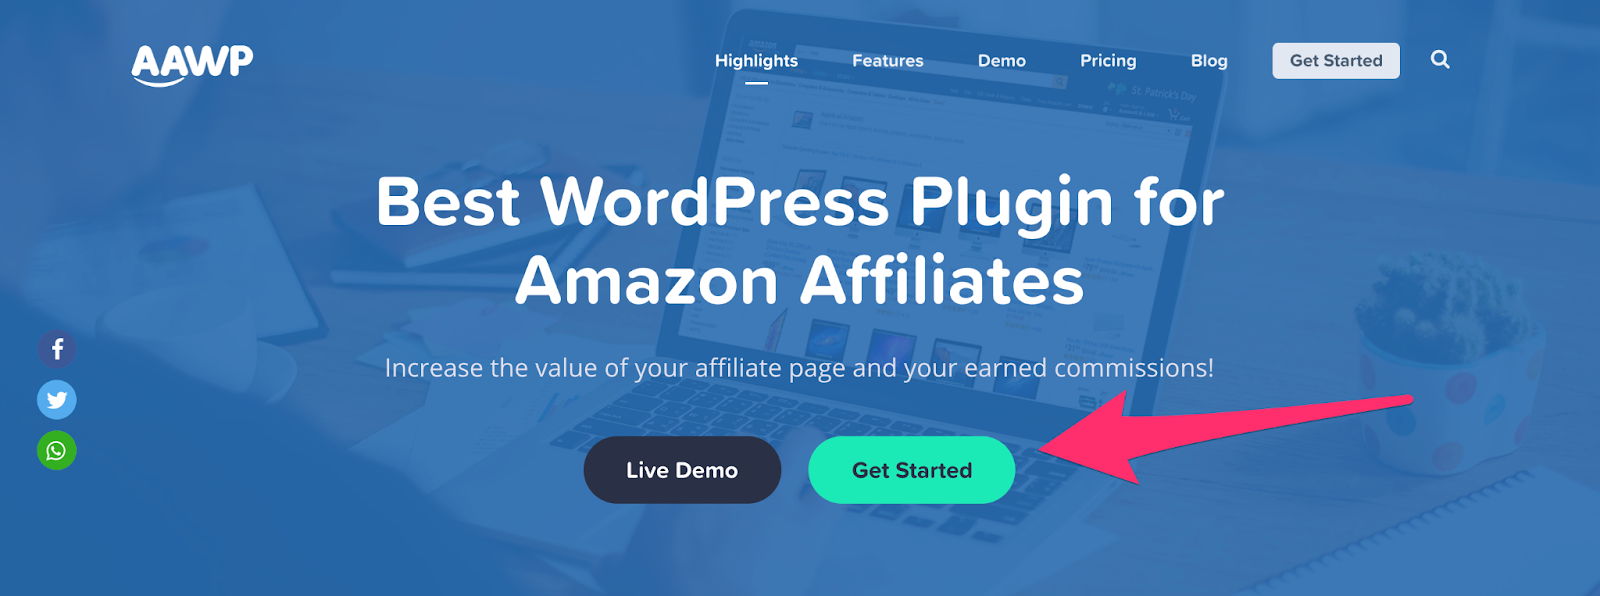 aawp plugin home page